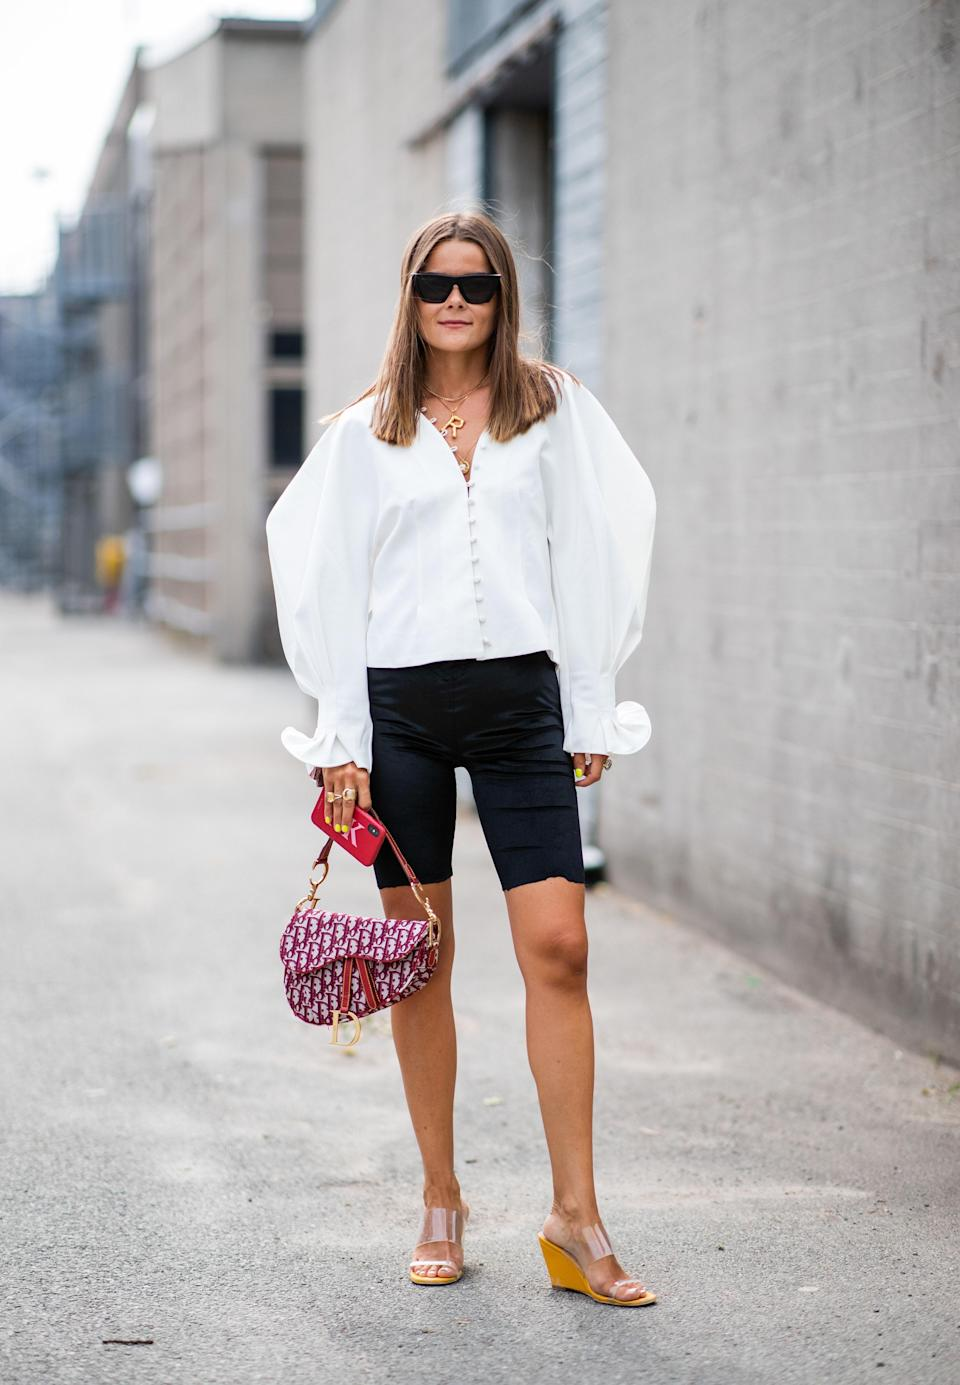 "Nostalgia is a recurring trend in fashion, which means all of your favorite shoes from the nineties are back. Lean into the decade by pairing them with your favorite <a href=""https://www.glamour.com/gallery/sweater-sets?mbid=synd_yahoo_rss"" rel=""nofollow noopener"" target=""_blank"" data-ylk=""slk:sweater sets"" class=""link rapid-noclick-resp"">sweater sets</a> and <a href=""https://www.glamour.com/gallery/giant-scrunchie-trend?mbid=synd_yahoo_rss"" rel=""nofollow noopener"" target=""_blank"" data-ylk=""slk:giant scrunchies"" class=""link rapid-noclick-resp"">giant scrunchies</a>."